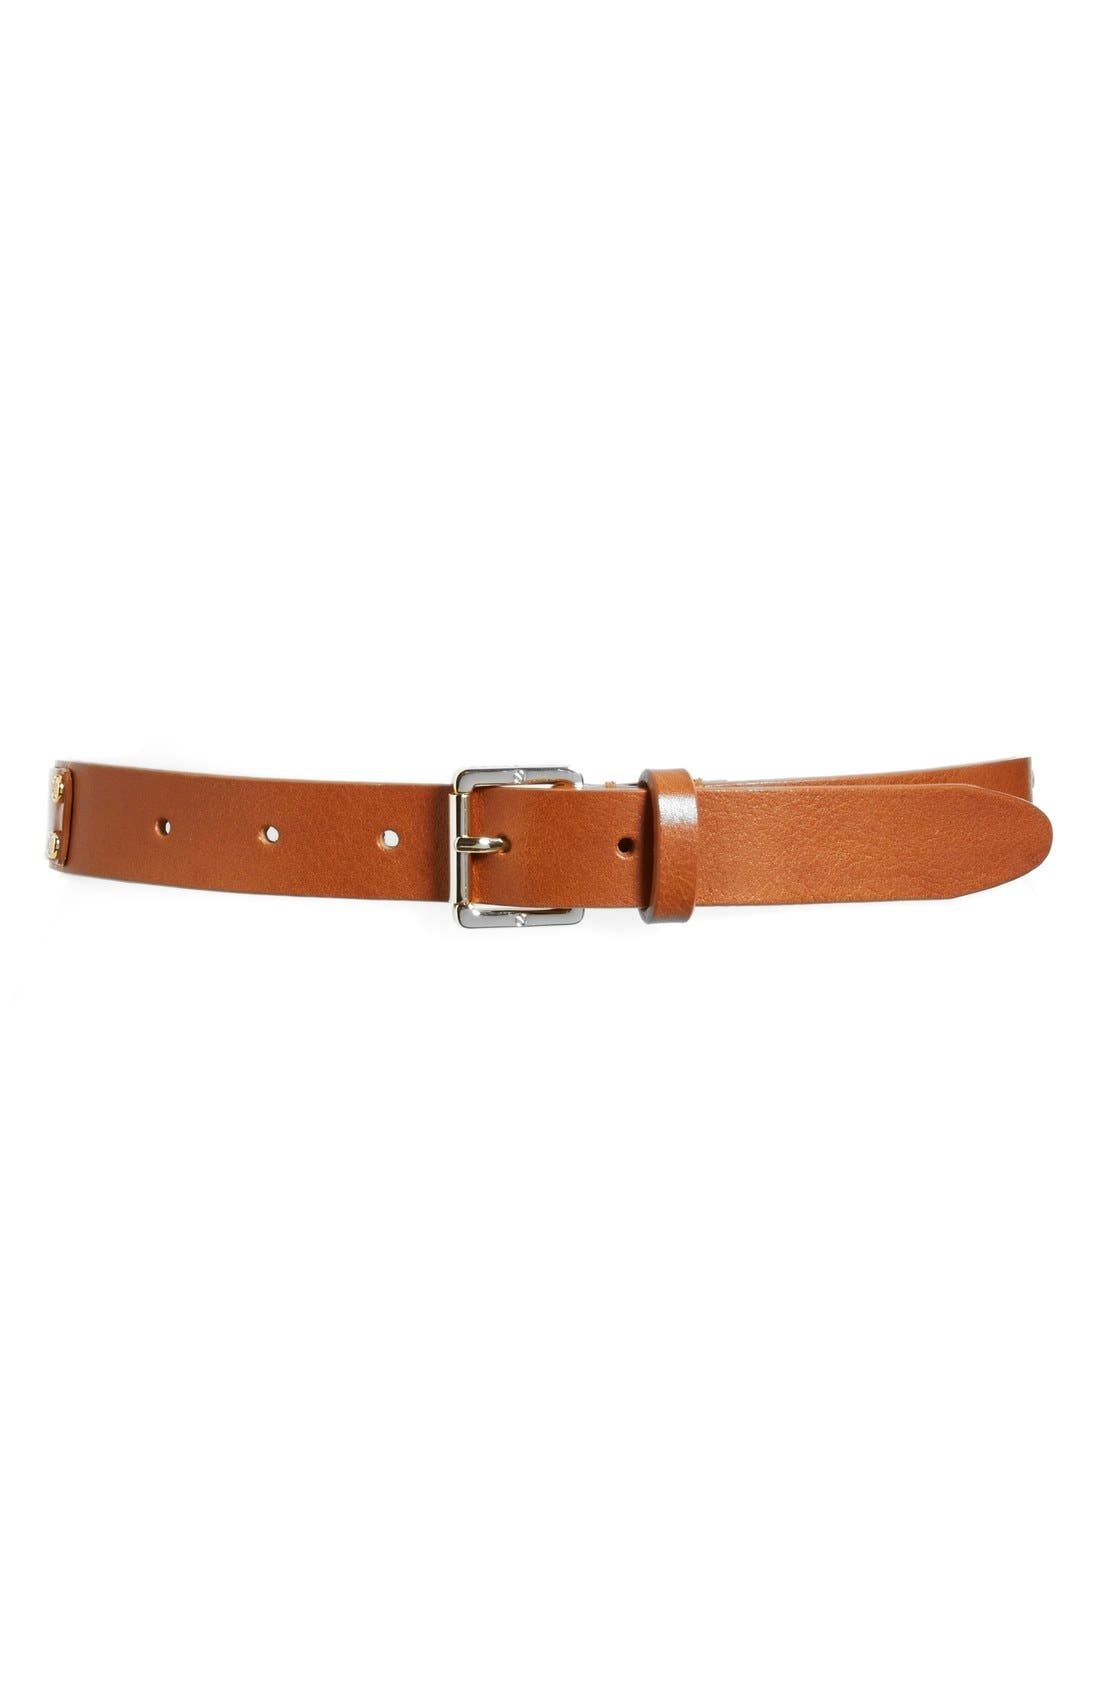 Main Image - Tory Burch Leather Rivet Belt